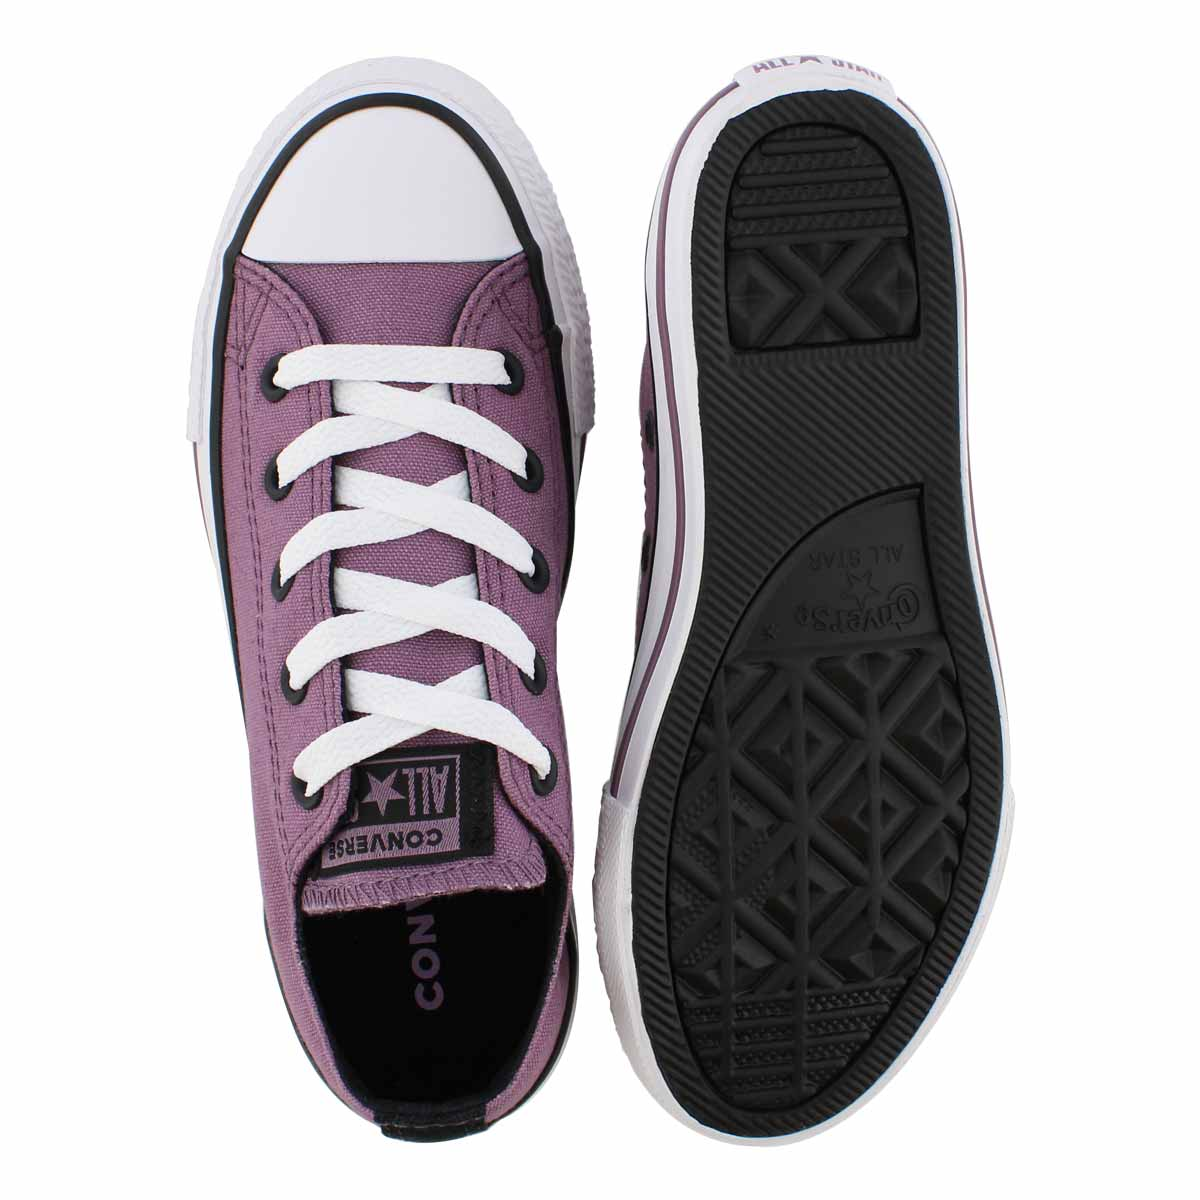 Grls CTAS Seasonal violet dust sneaker